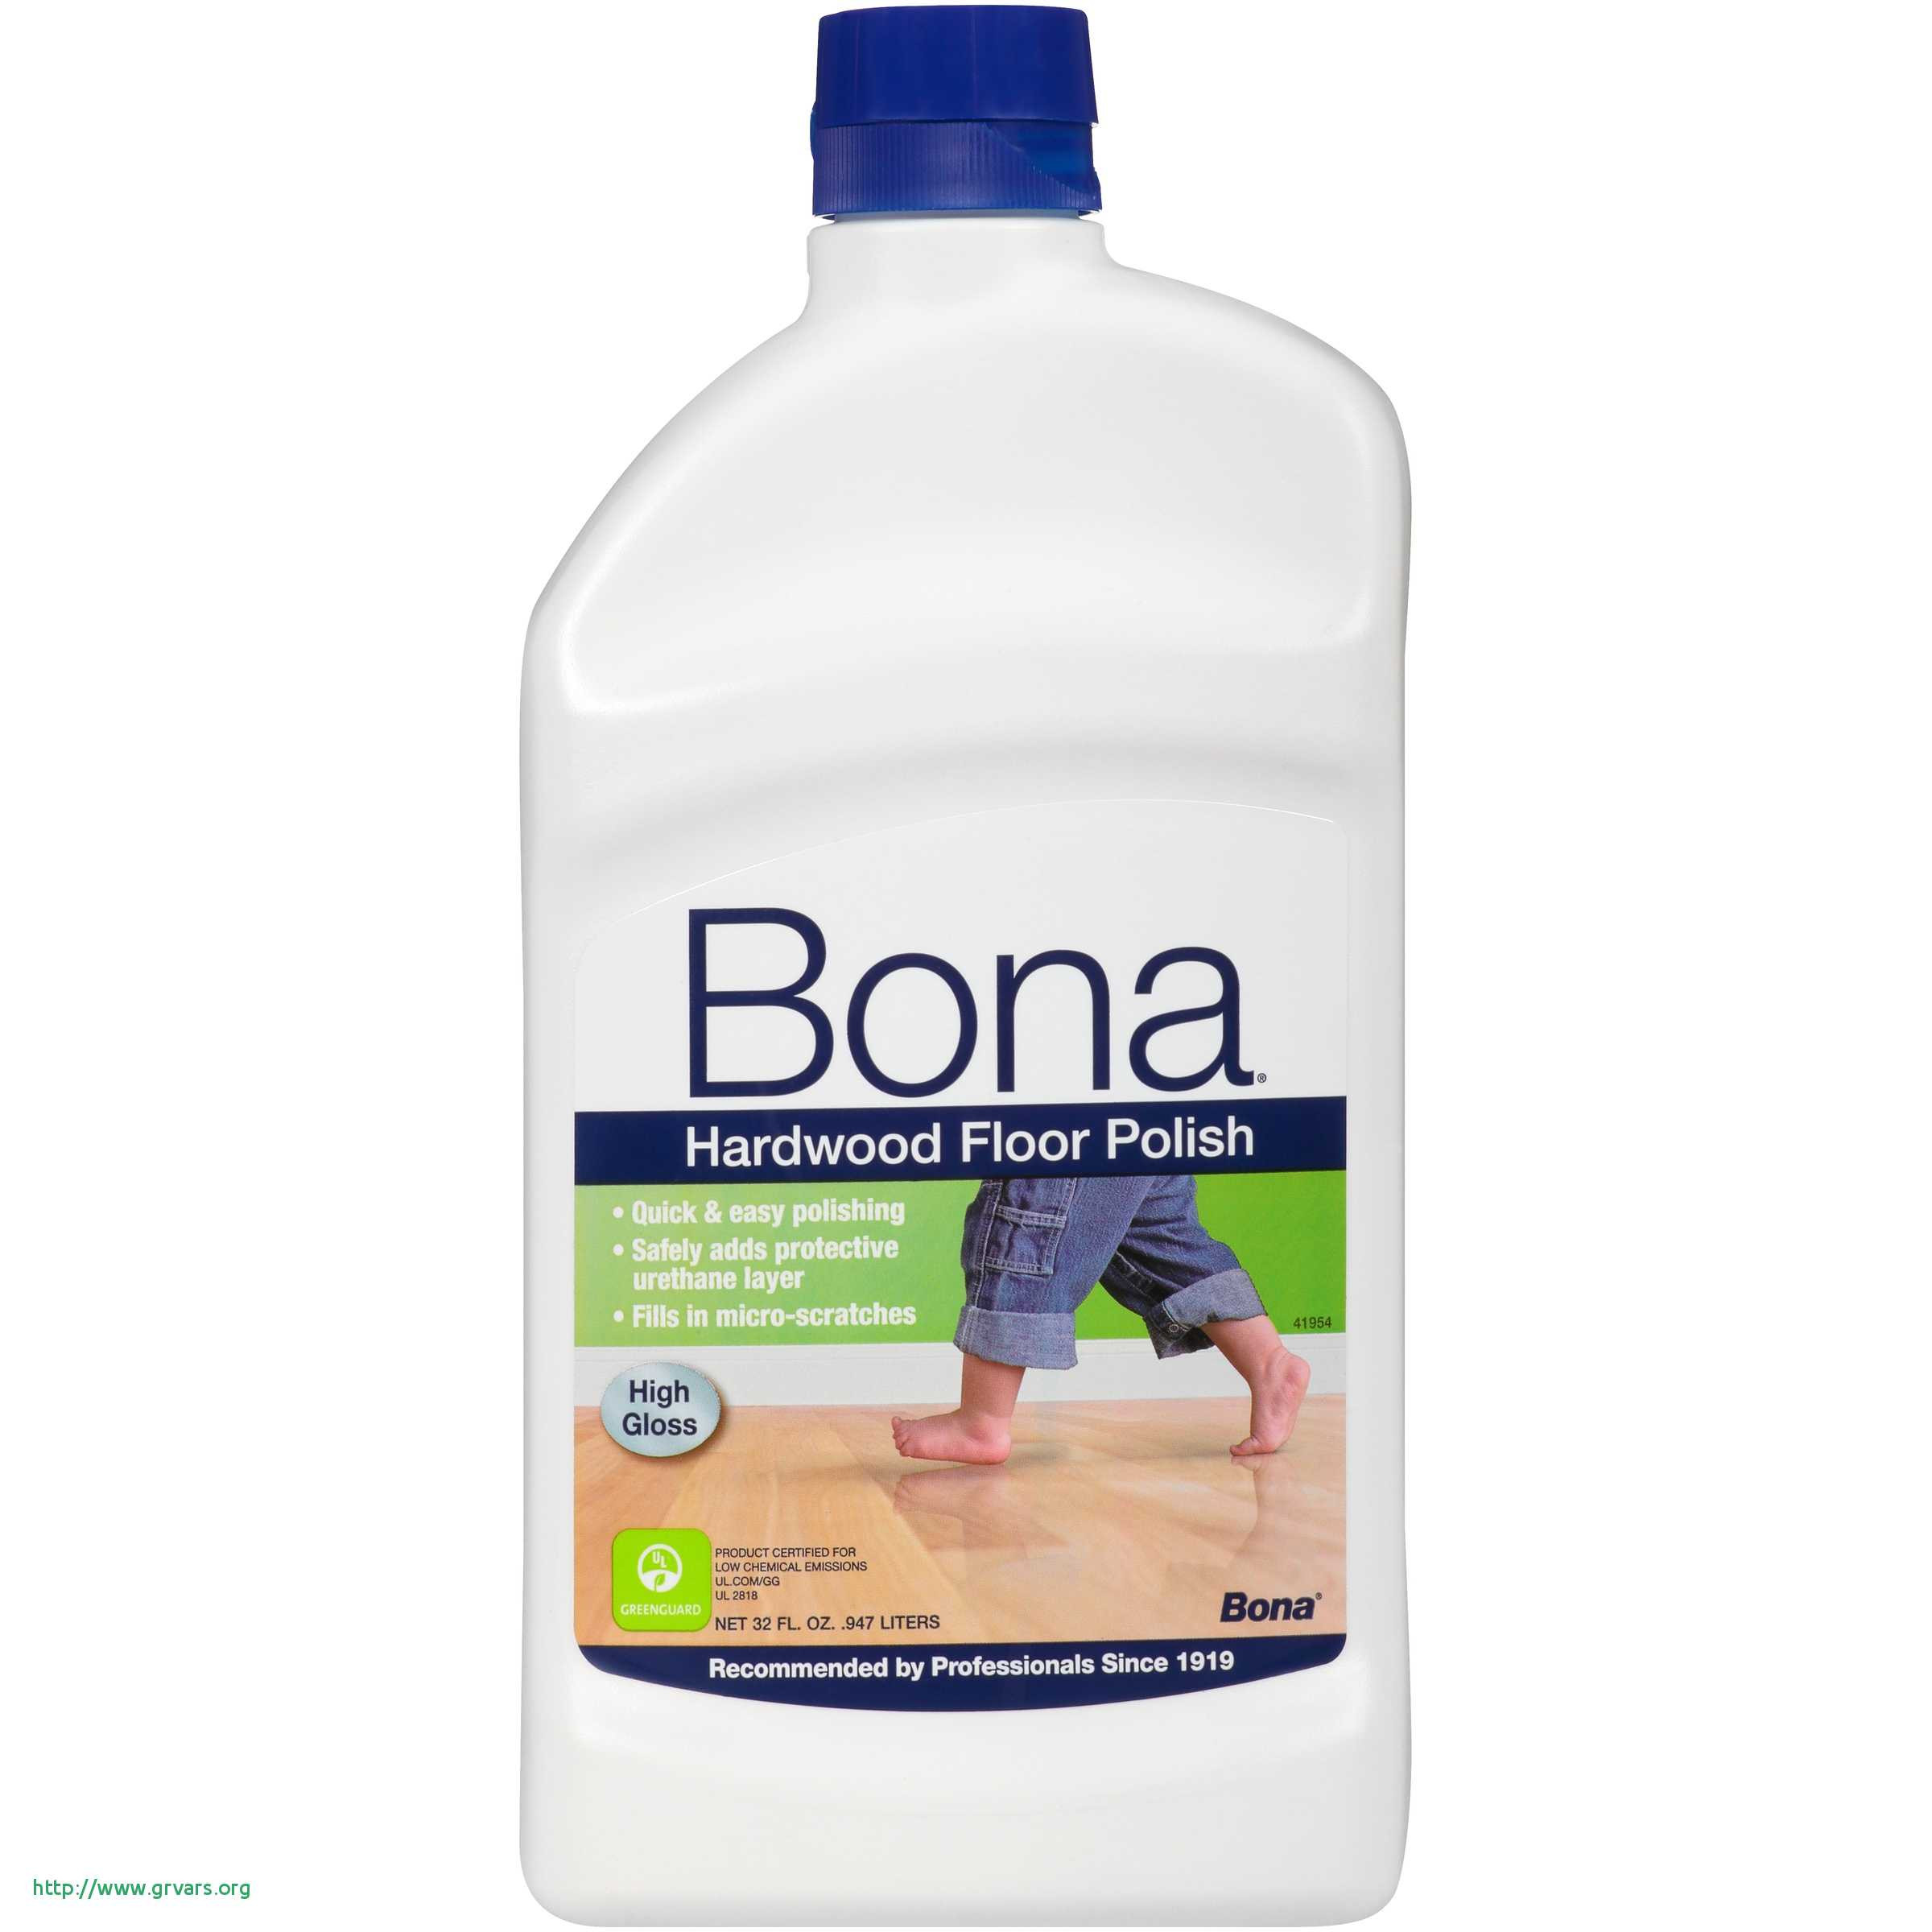 bruce hardwood floor cleaner walmart of reviews on bona floor cleaner unique bona hardwood floor polish high within reviews on bona floor cleaner unique bona hardwood floor polish high gloss walmart